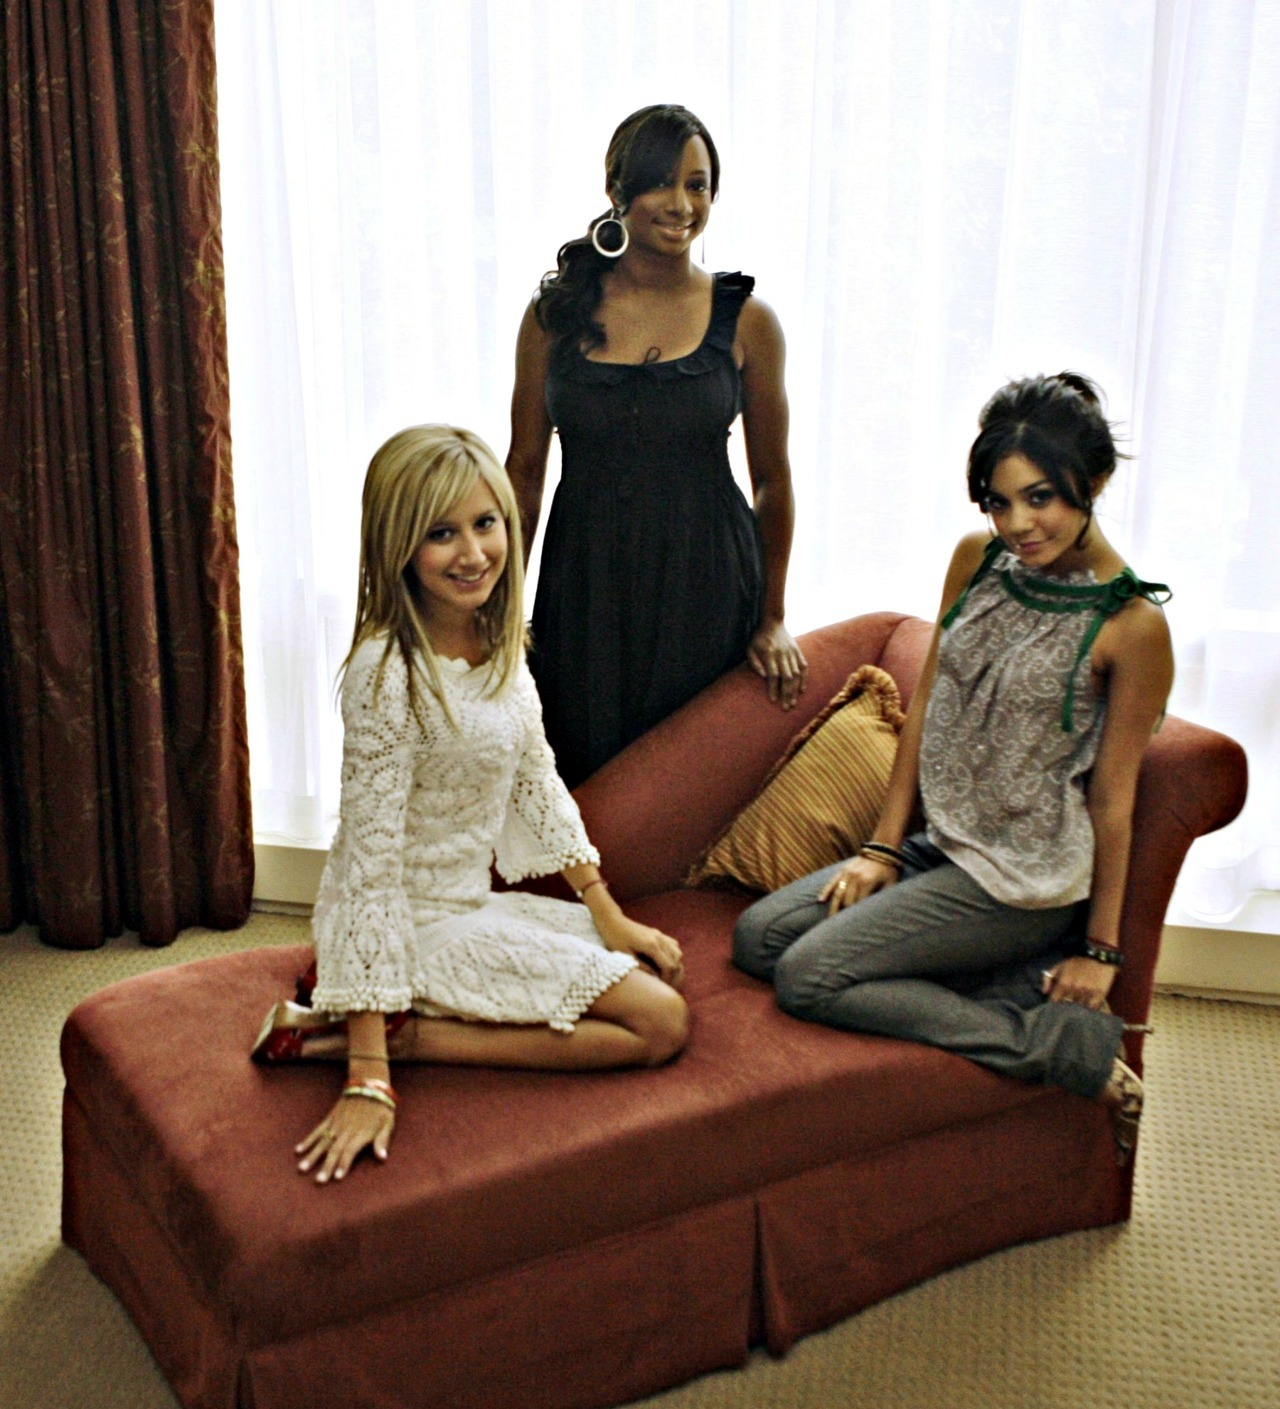 Ashley Tisdale and Vannesa Hudgens - Page 5 Tumblr_lz4xtebJHW1ro20qso1_1280